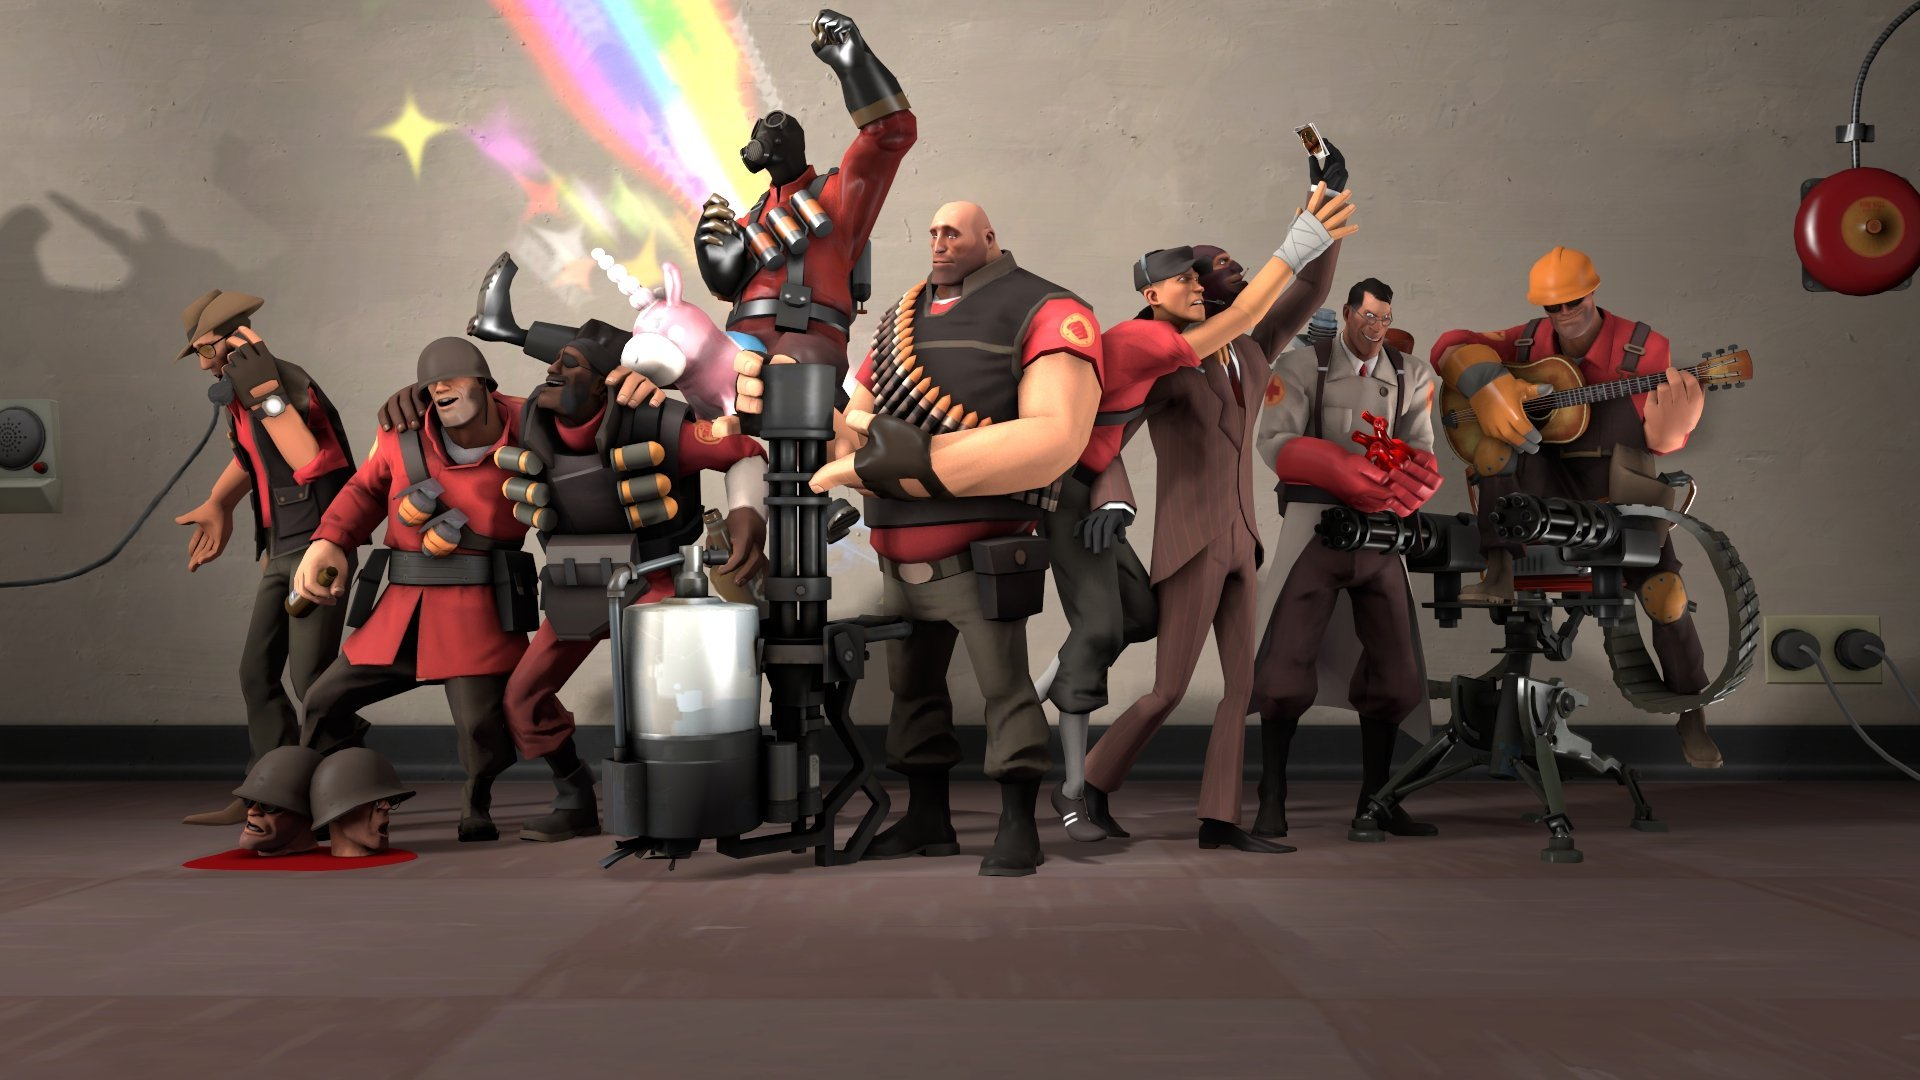 team fortress team fortress - photo #4